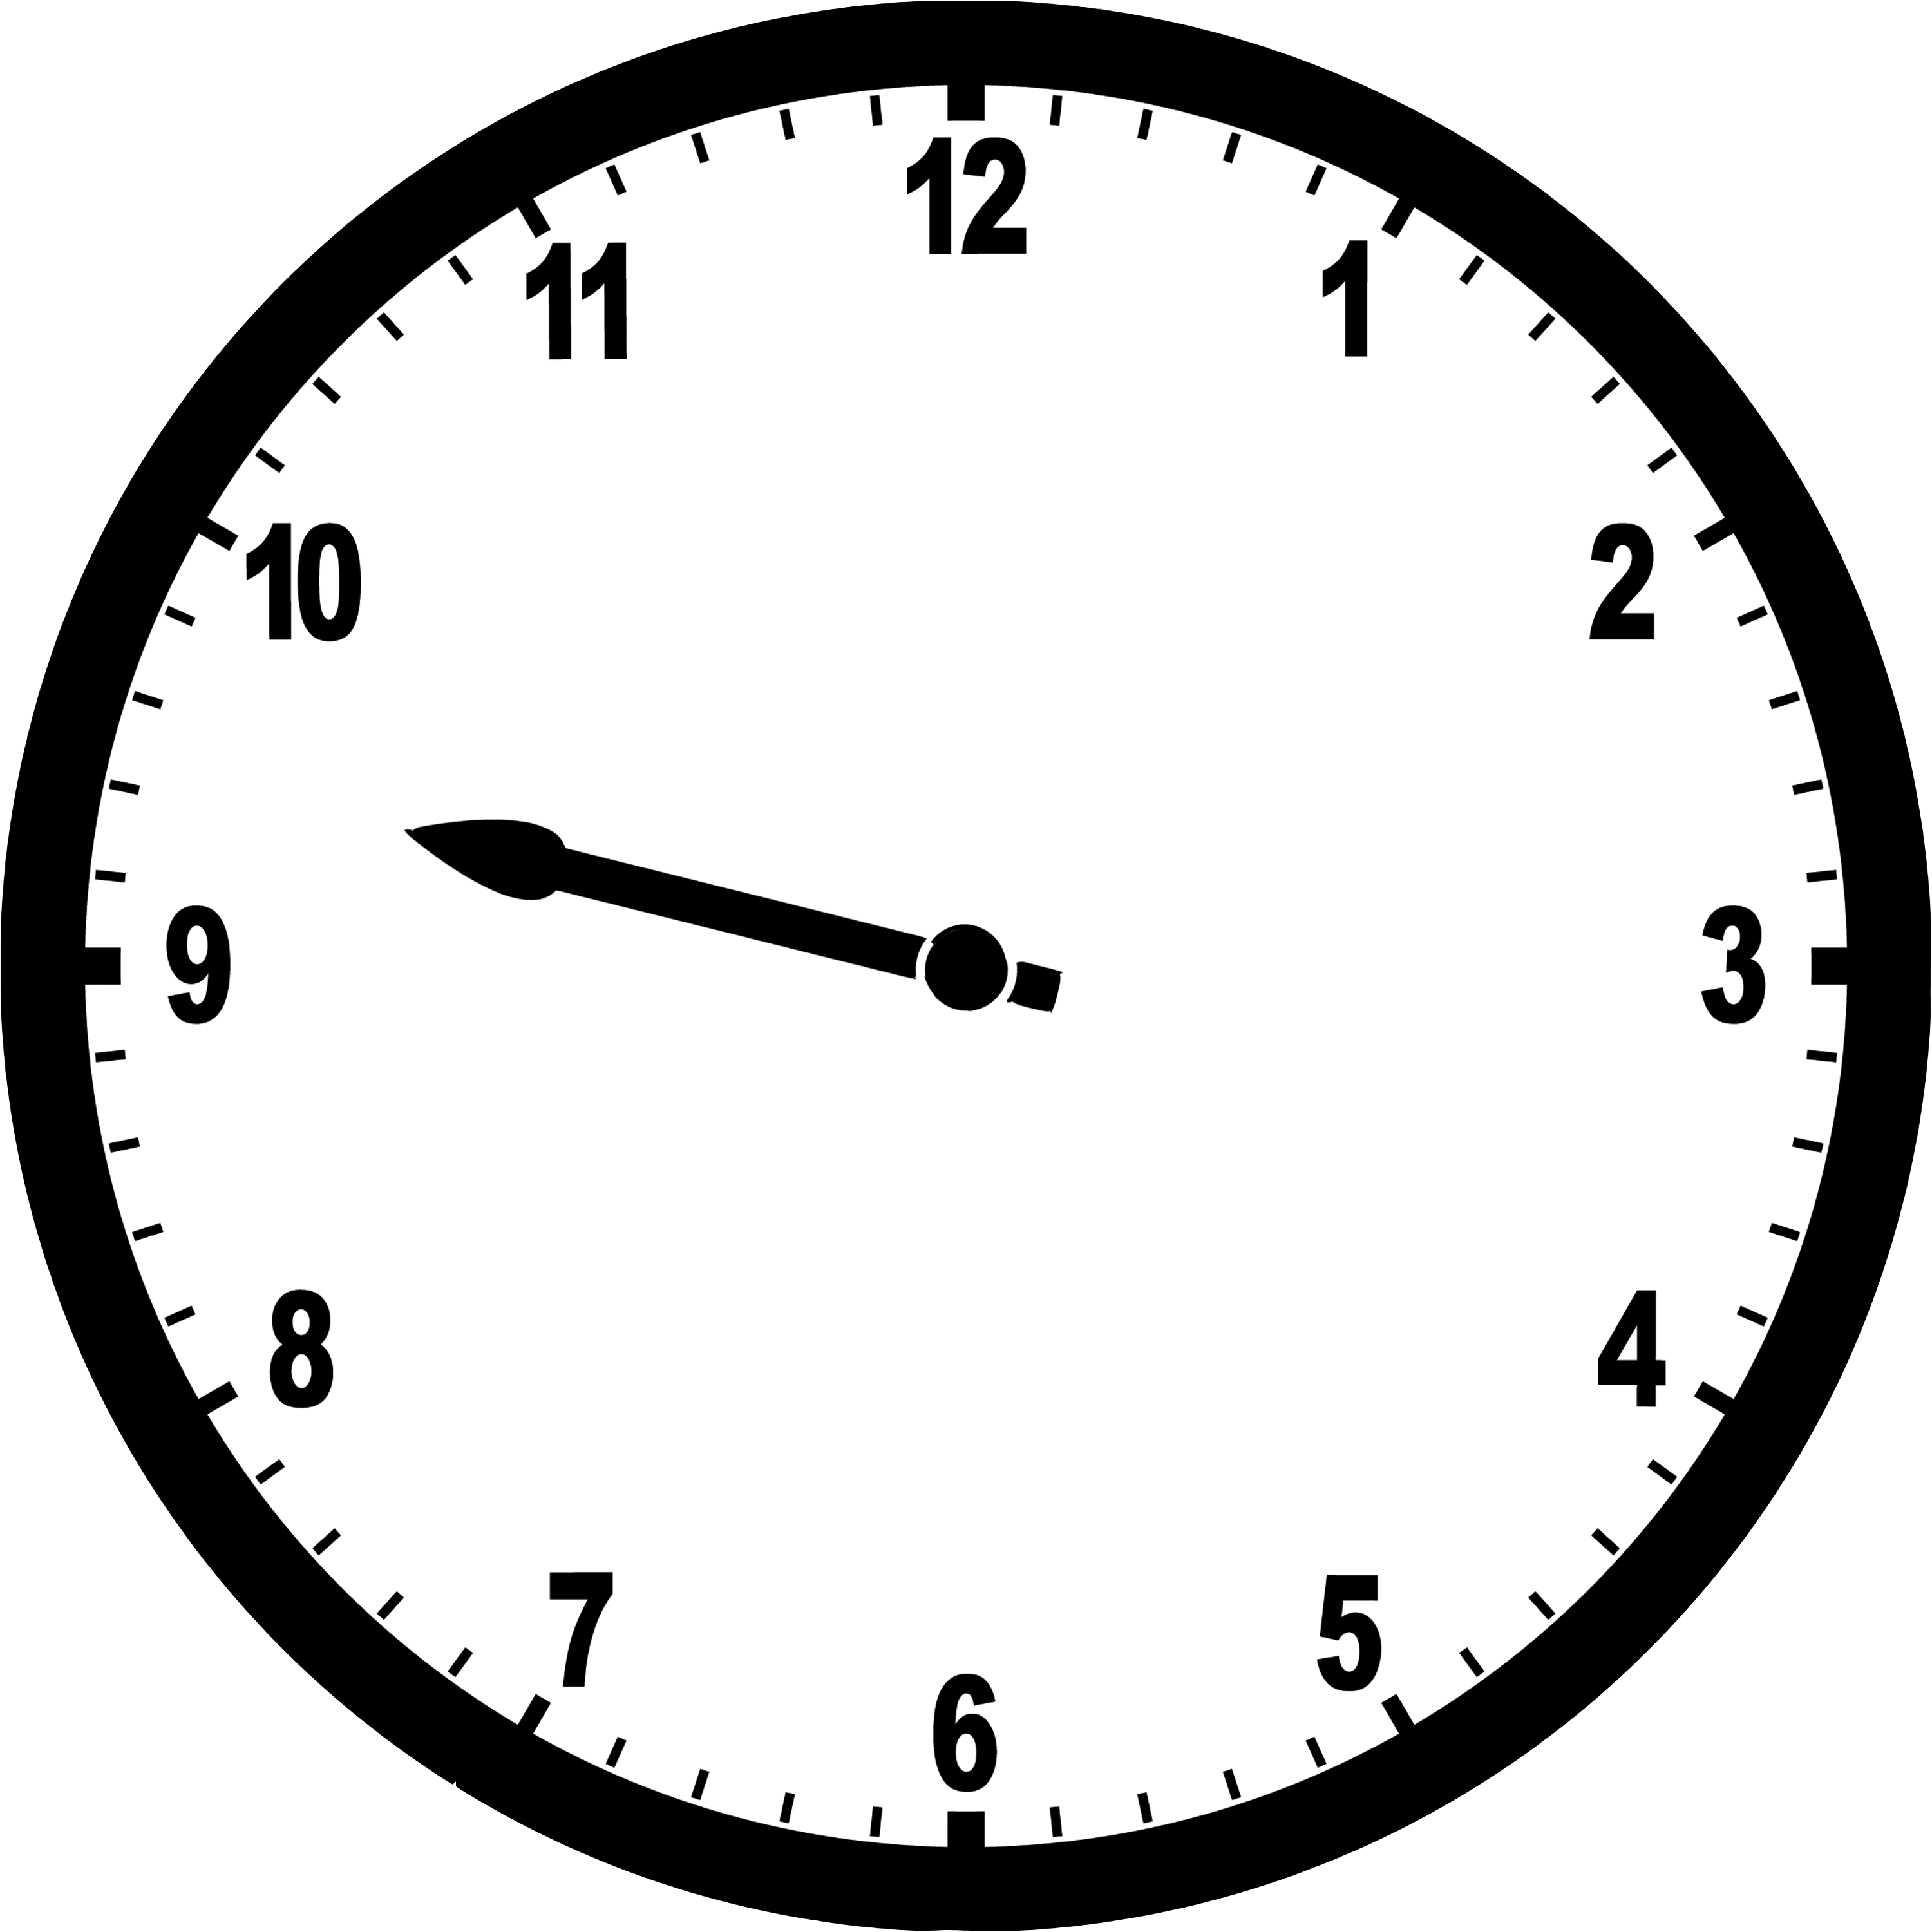 Clipart clock 7 o clock. Hour hand clipground it